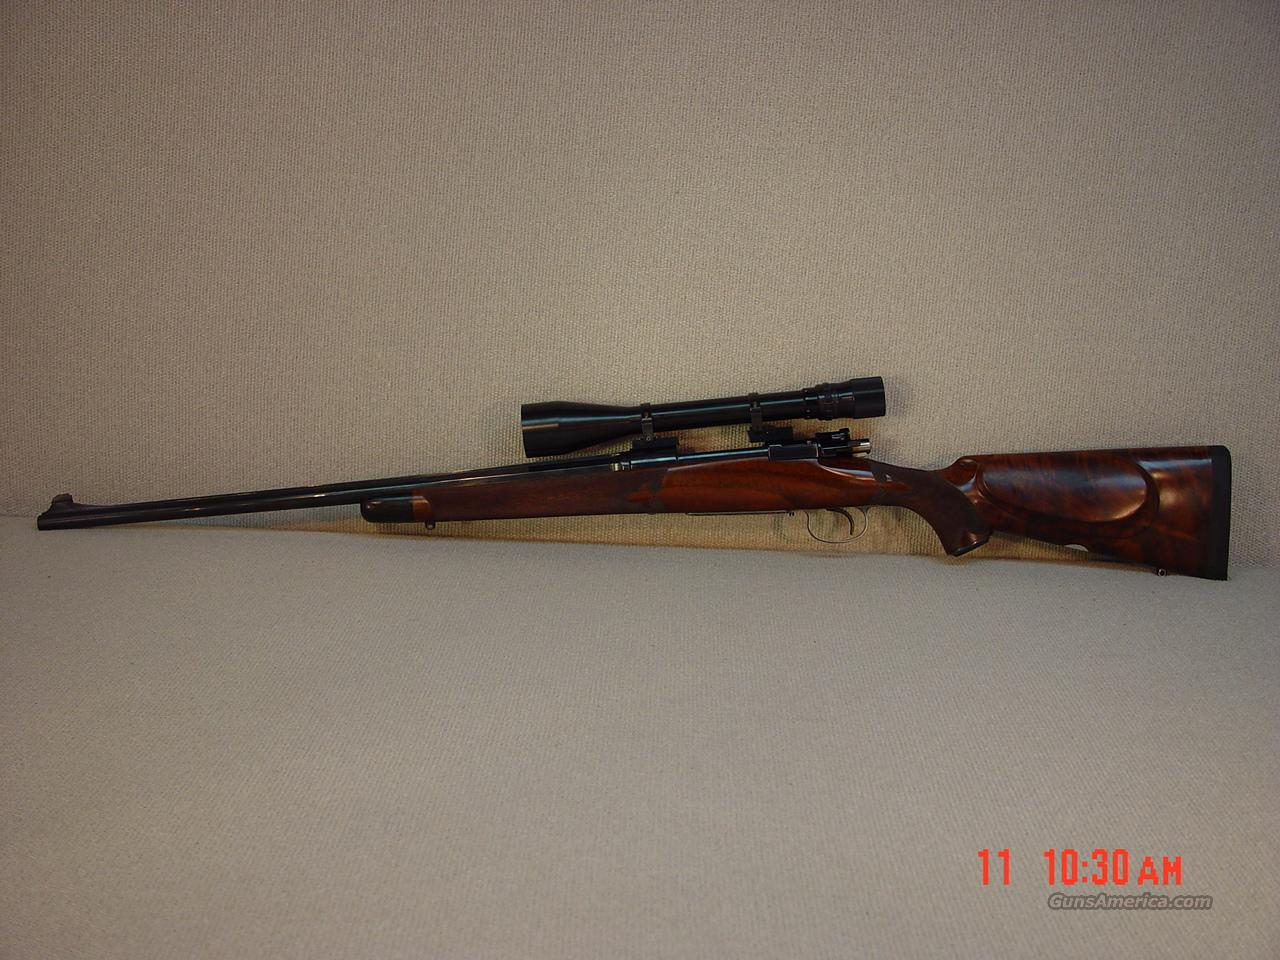 BOB OWENS/ARNOLD GRIEBEL 30-06 with SCOPE  Guns > Rifles > Custom Rifles > Bolt Action